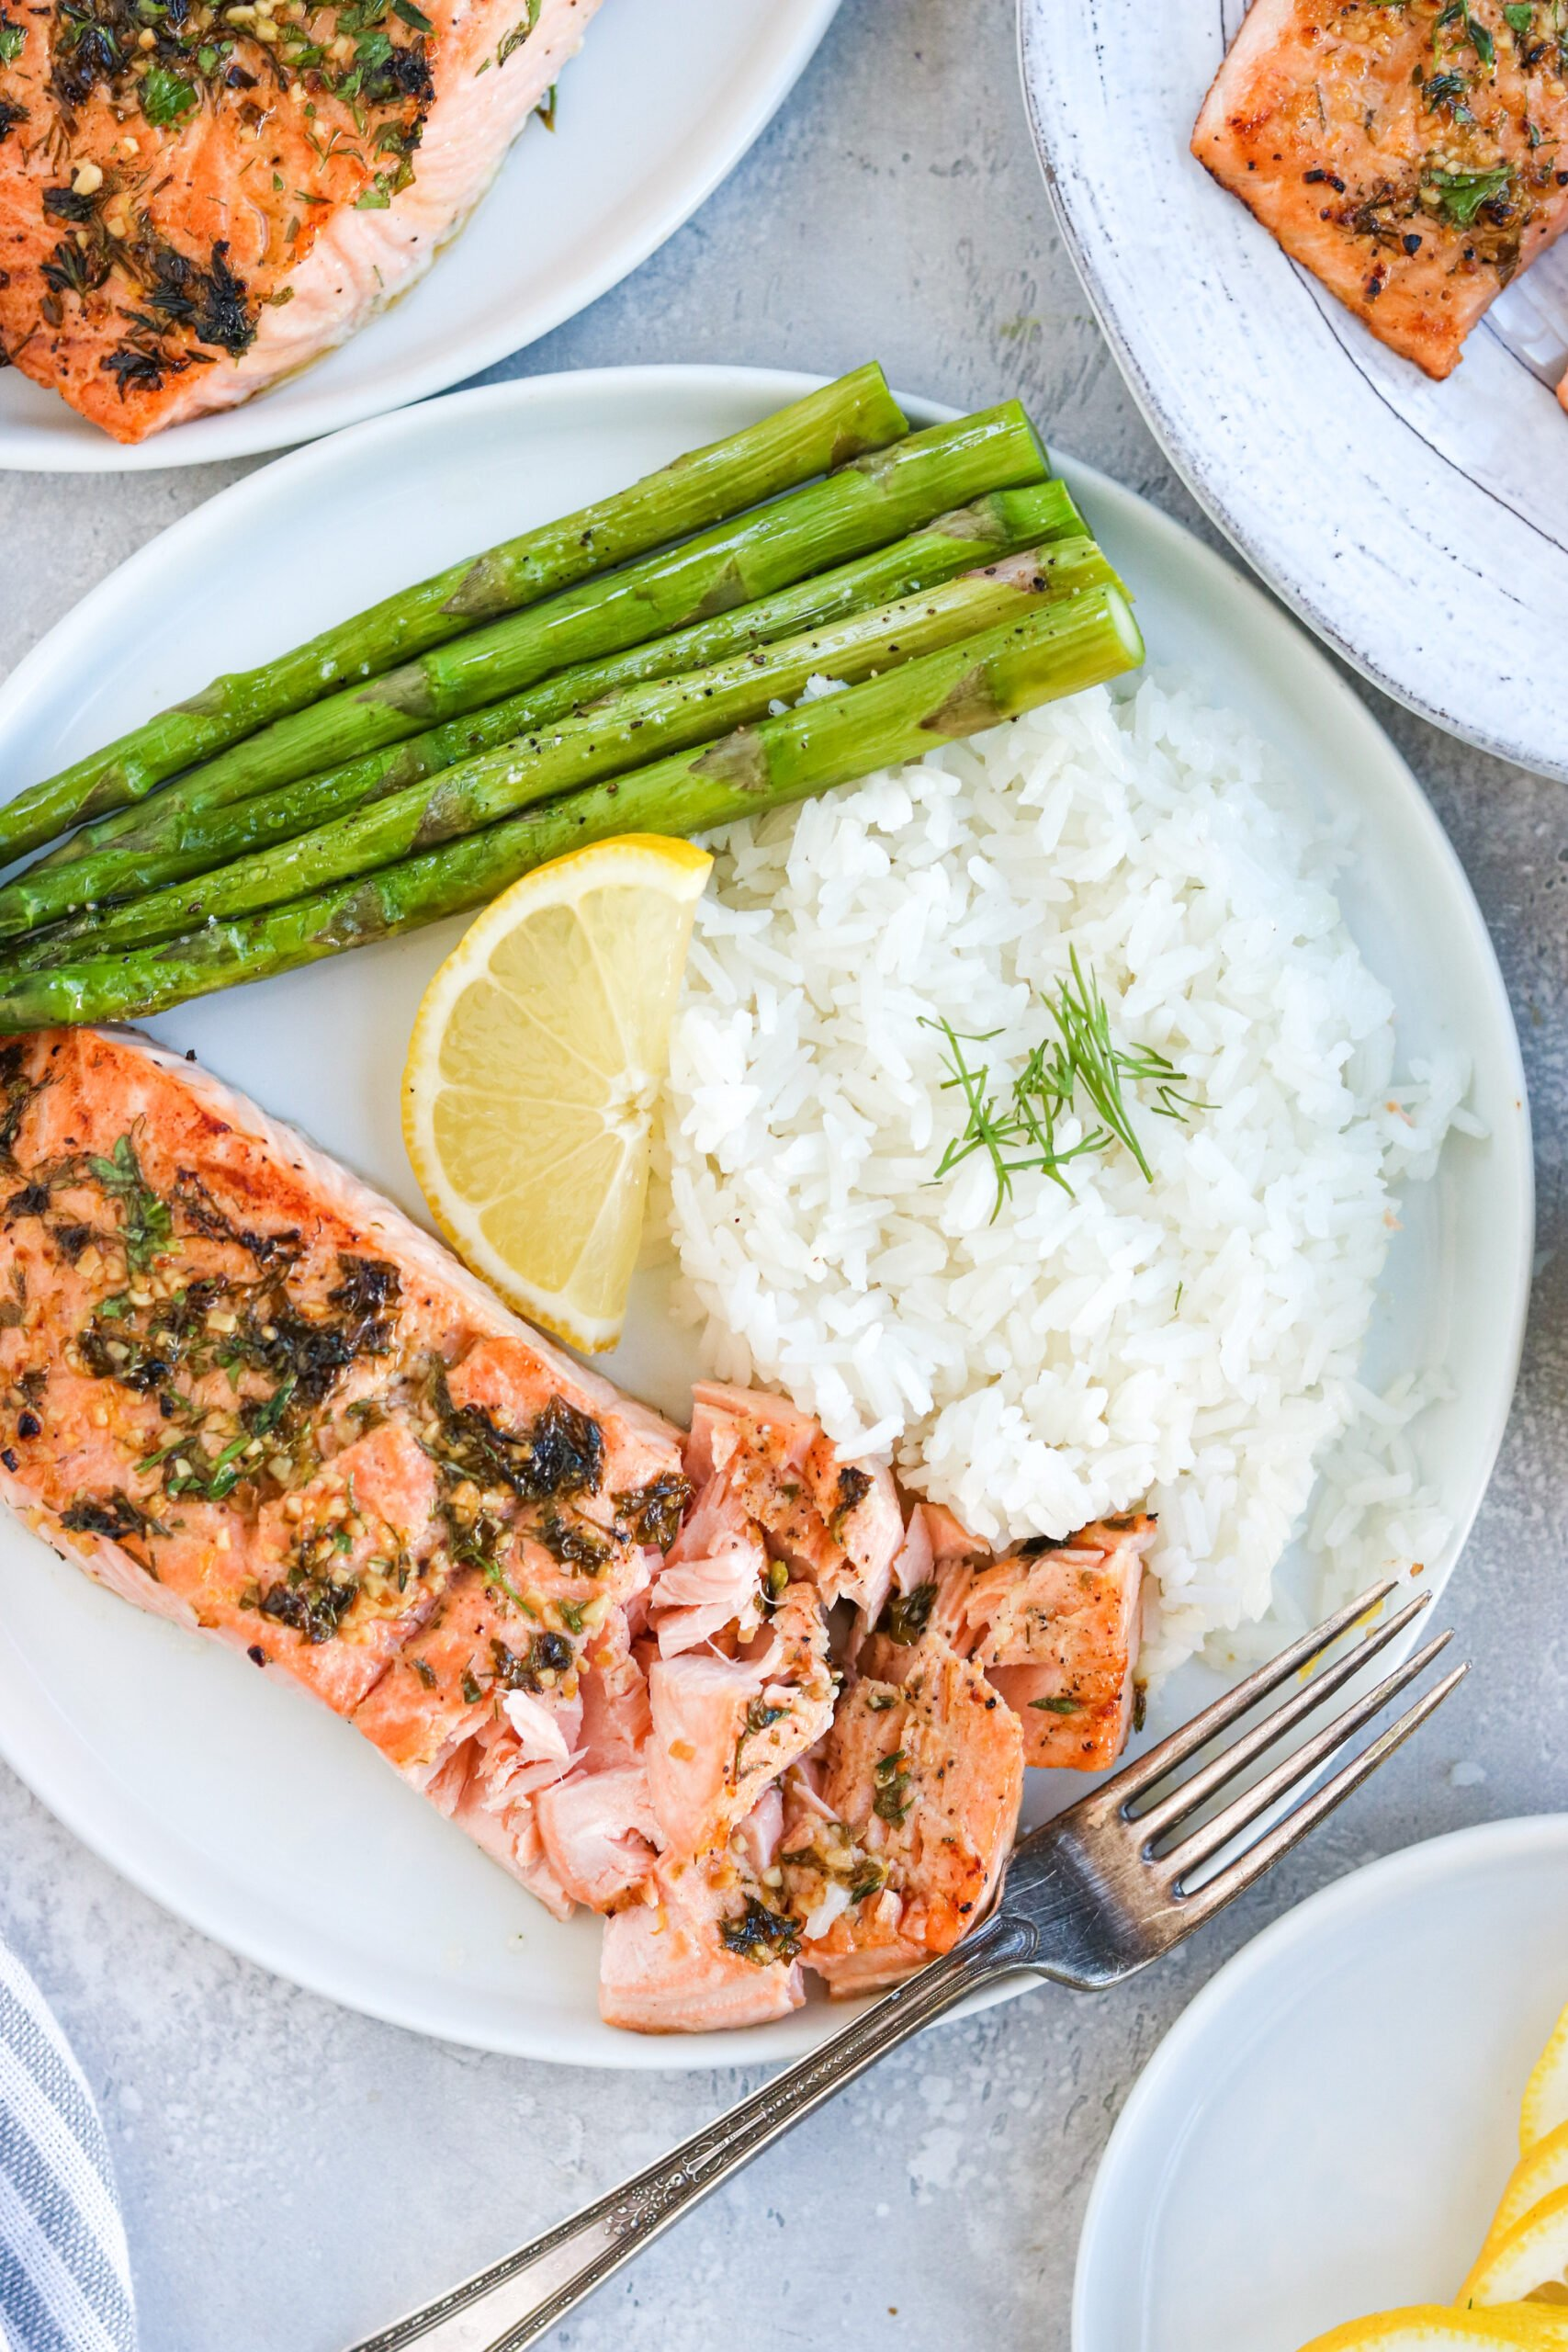 garlic herb baked salmon on a white plate with asparagus, white rice, and a lemon wedge, next to a silver fork with a white background